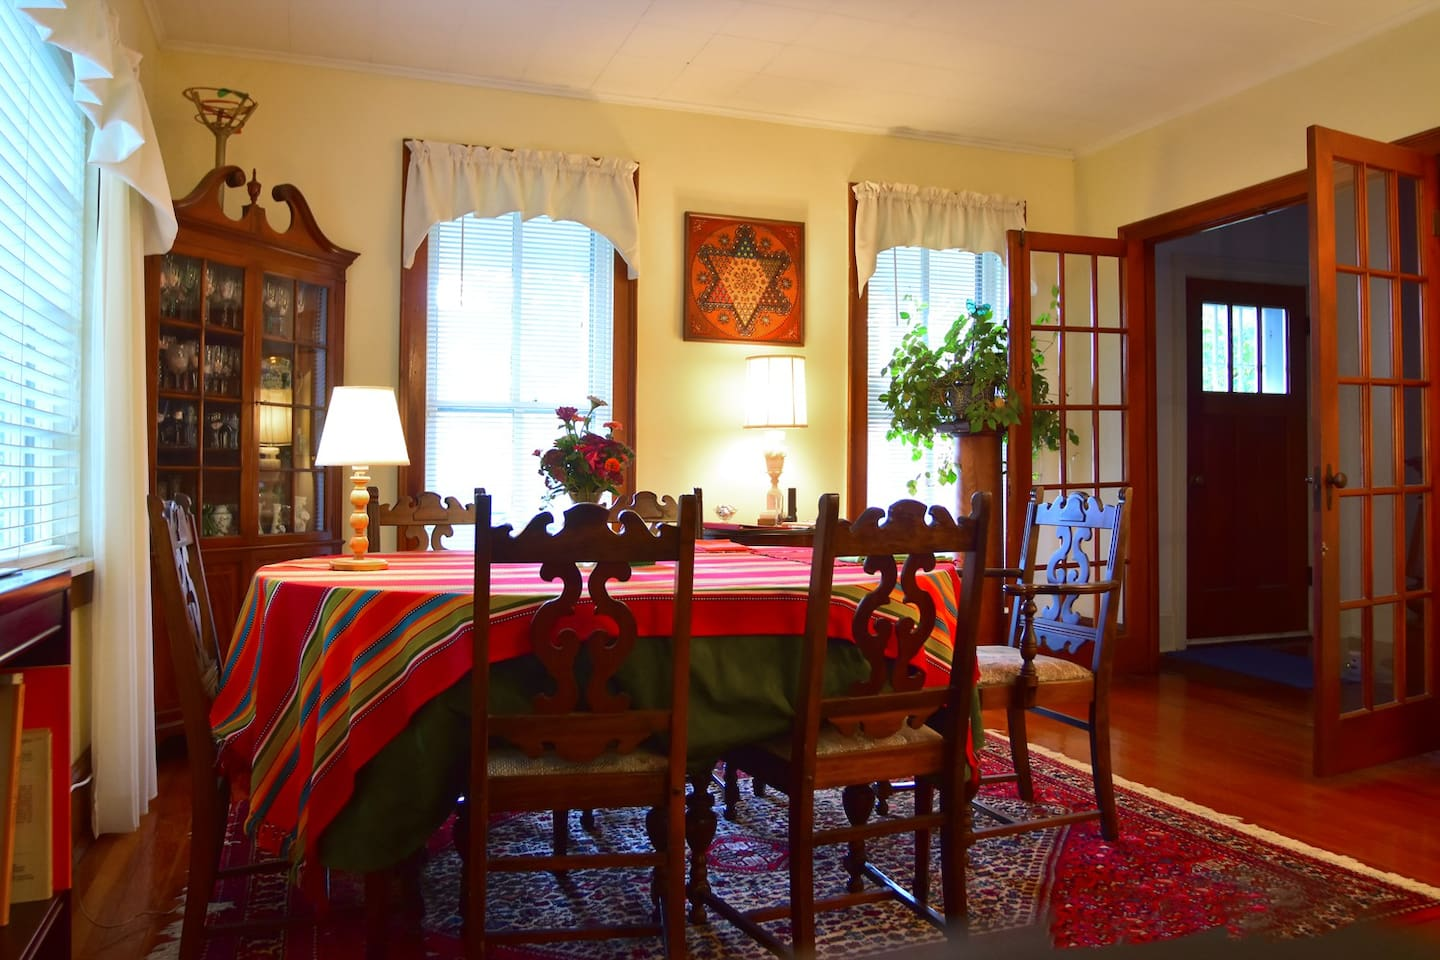 Our formal dining room greets you as you come in the front door.